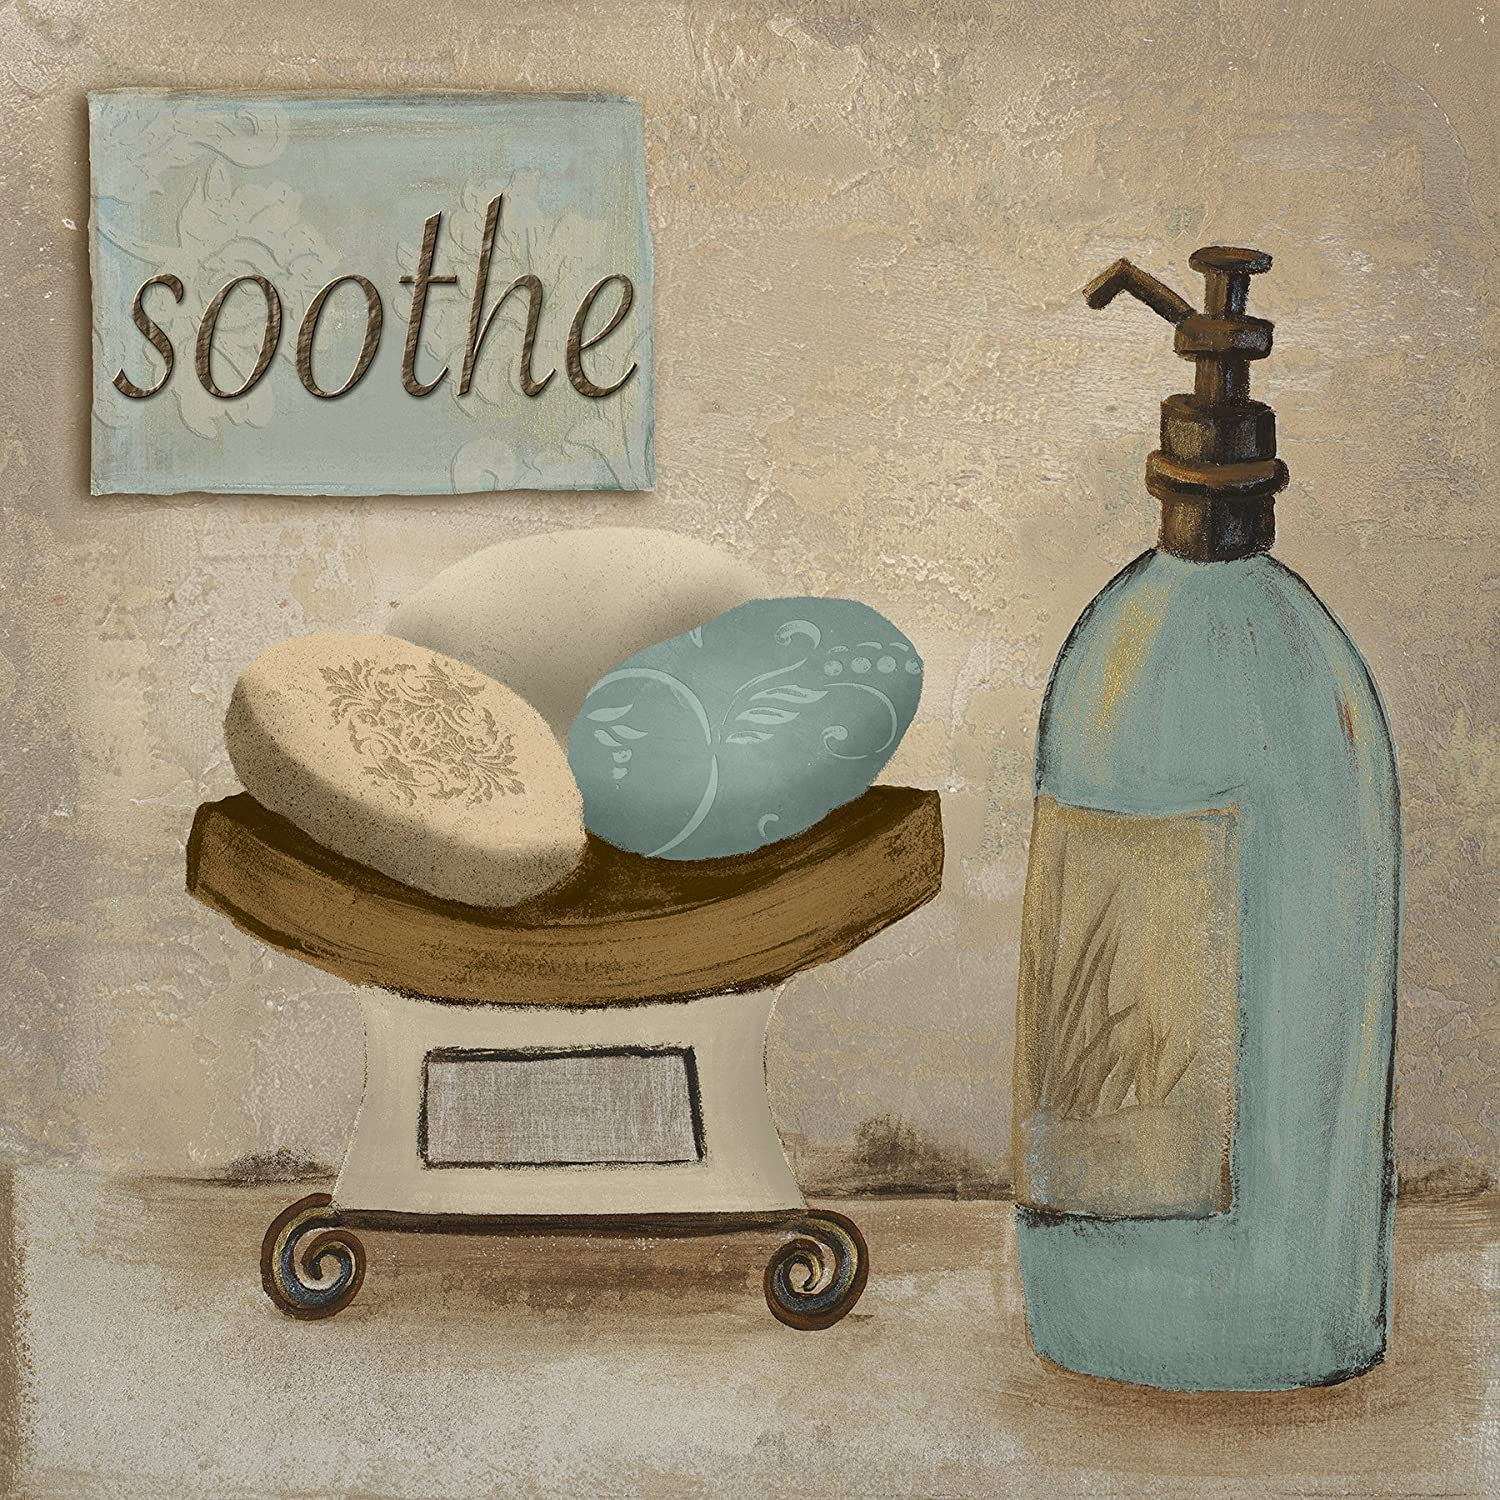 Amazon Com Soothe Spa Bathroom Art Print Poster 12x12 Posters Prints